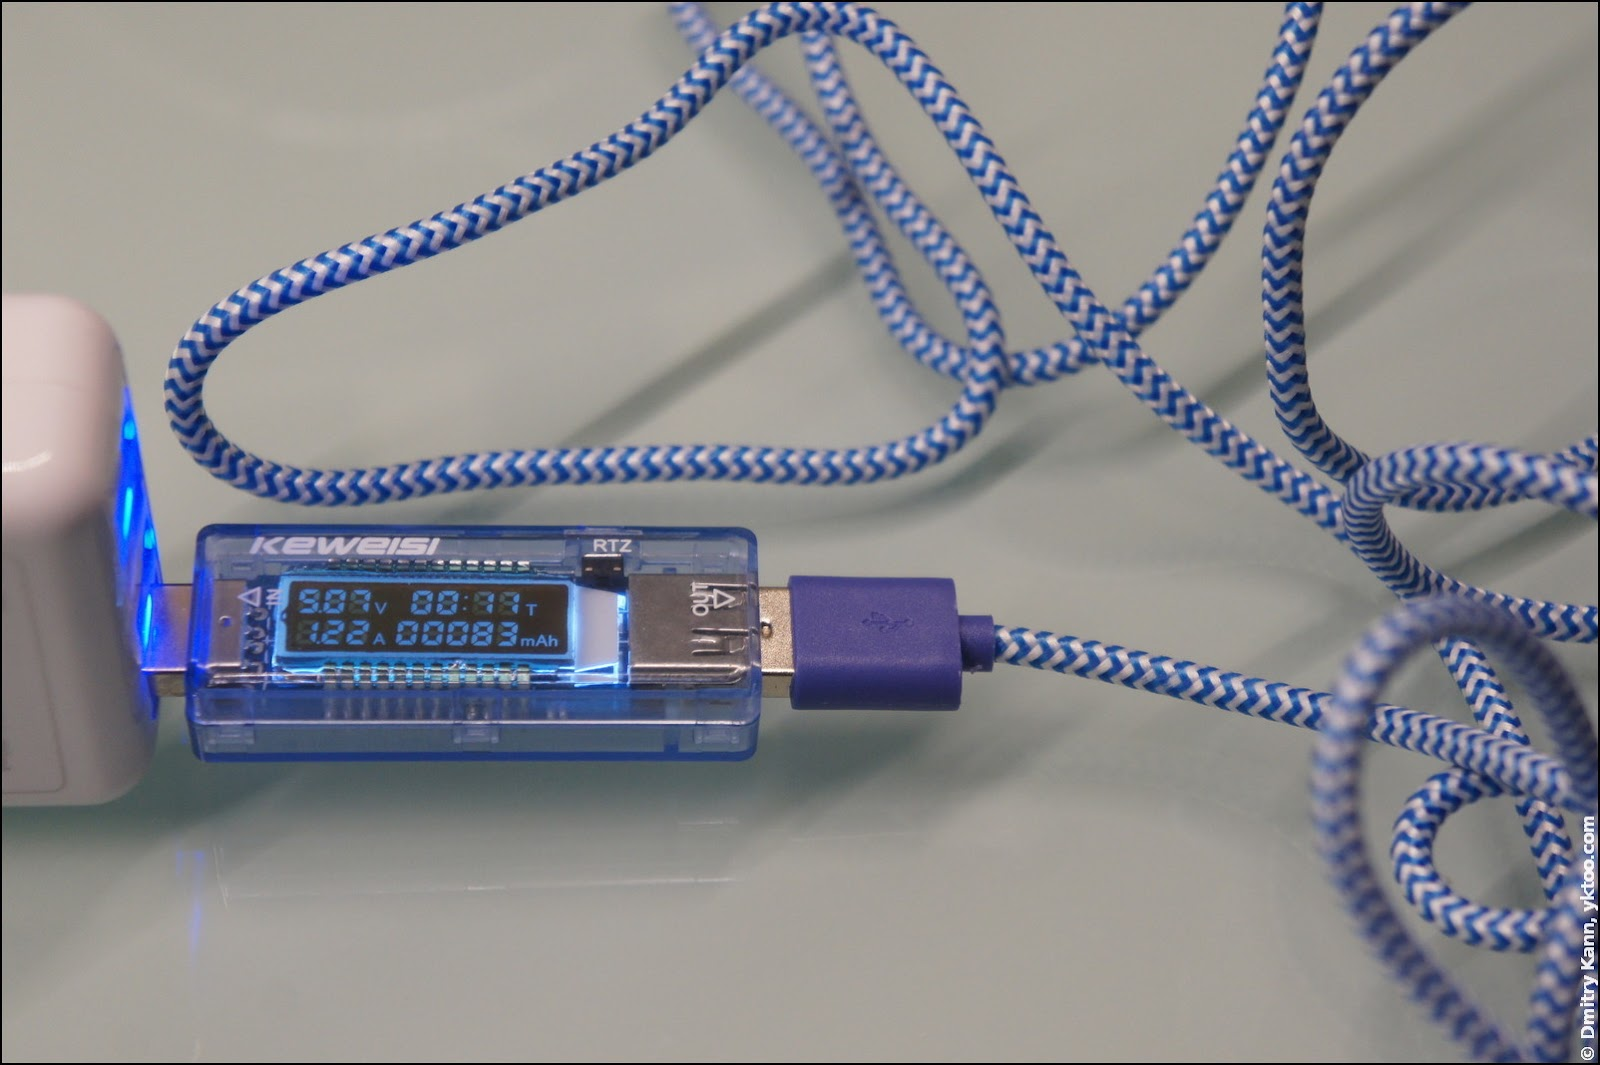 Hema cable: 2 m, current 1.22 A.